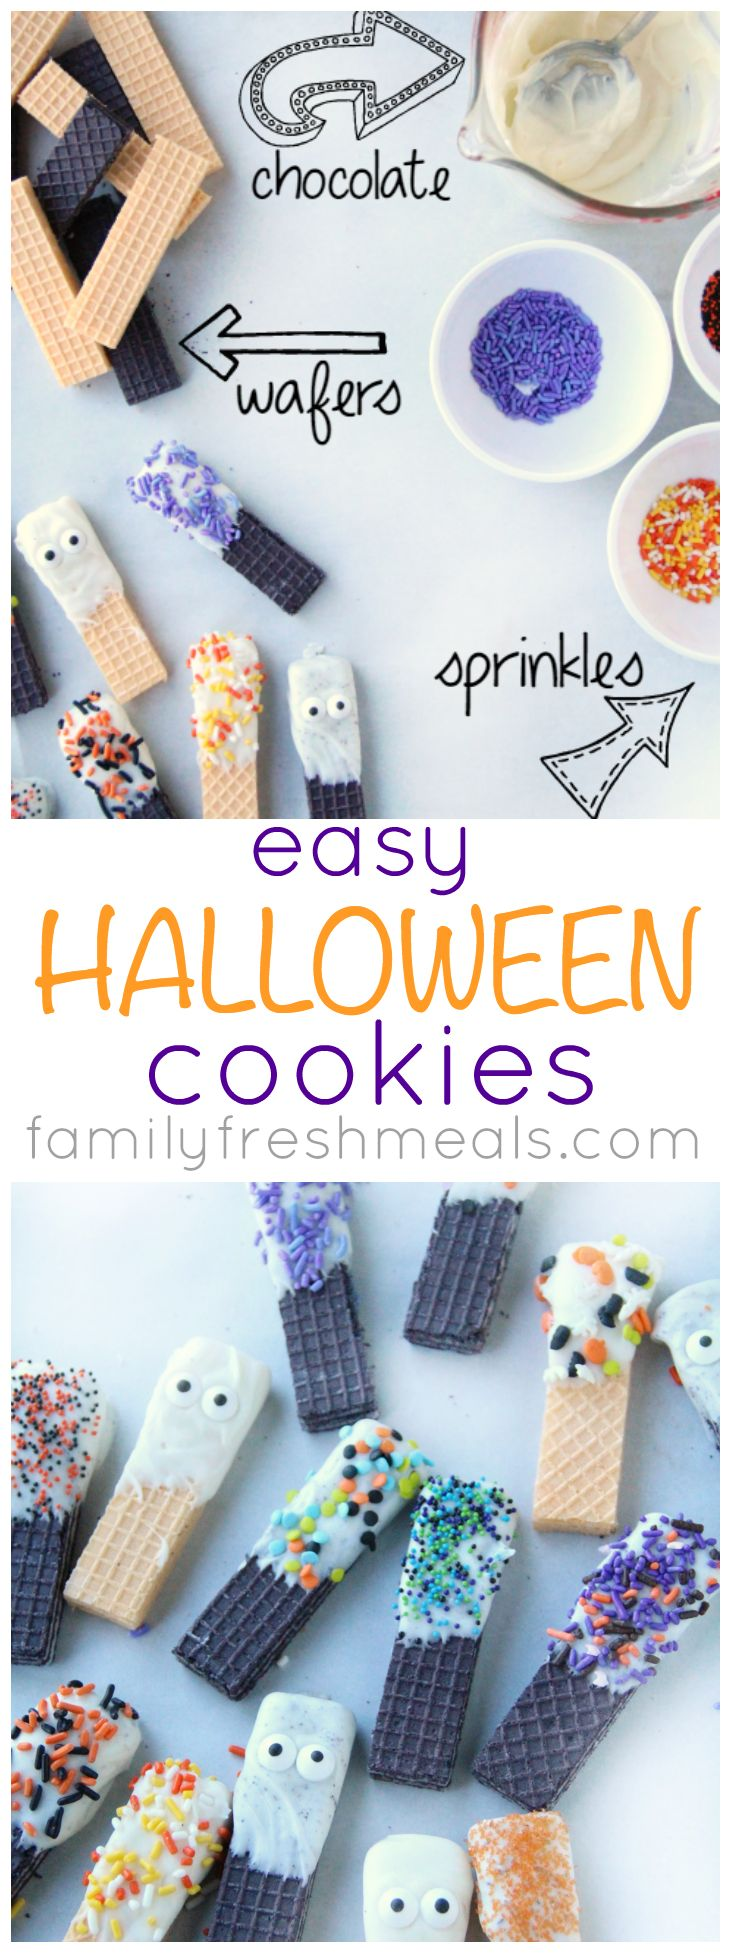 1000+ images about Halloween! on Pinterest | Halloween party, Easy ...